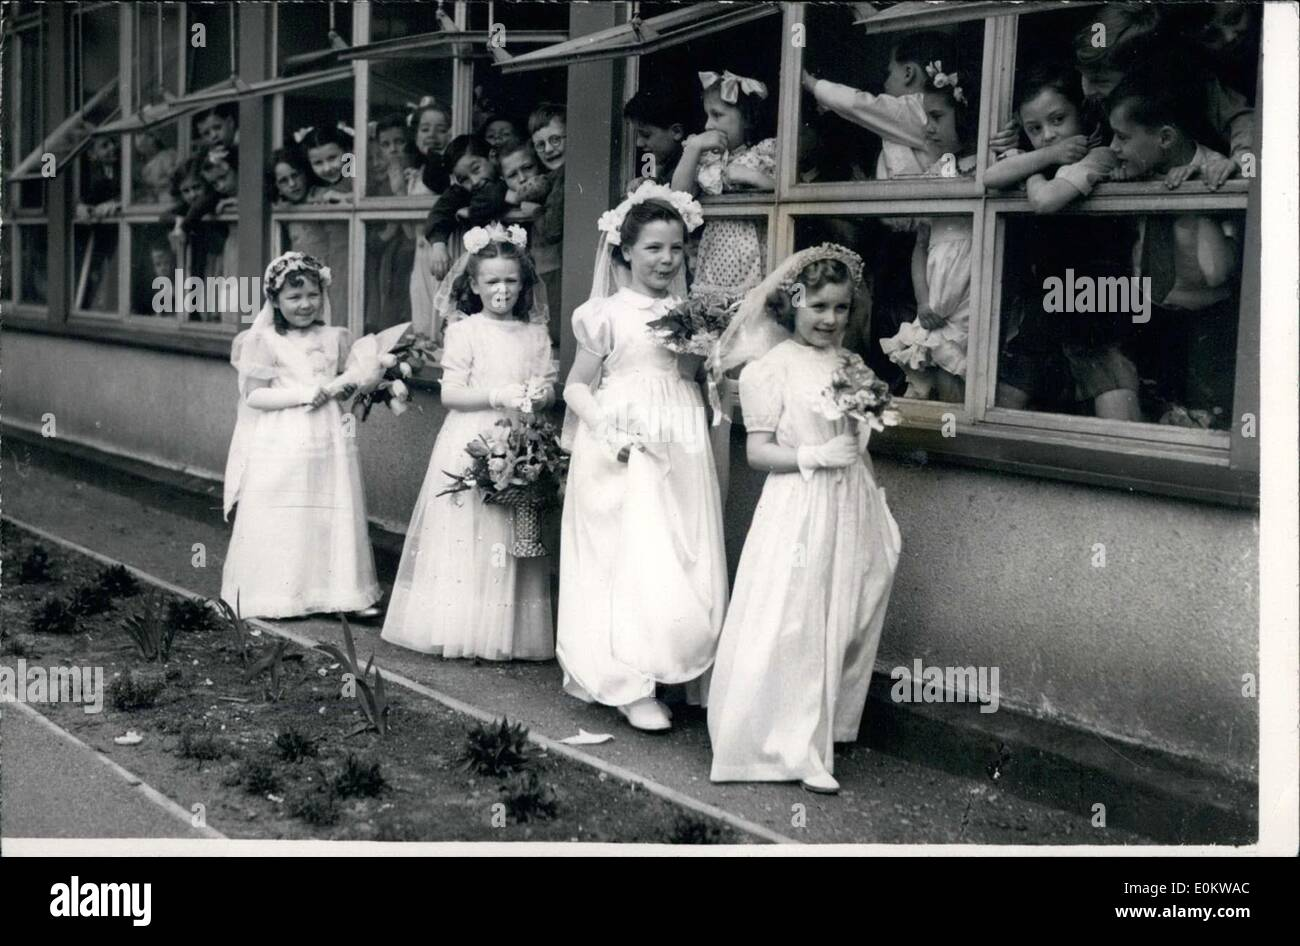 May 05, 1950 - May Day Ceremonies At The Hugh Myddleton School The Youngsters Look On: Photo shows Four of the tiny May Queens walk off as some of their school colleagues look on - during the May Day ceremonies - held this morning at the Hugh Myddleton School, E.C.I. during which six little girls were crowned as ''Queens of the May' - Stock Image